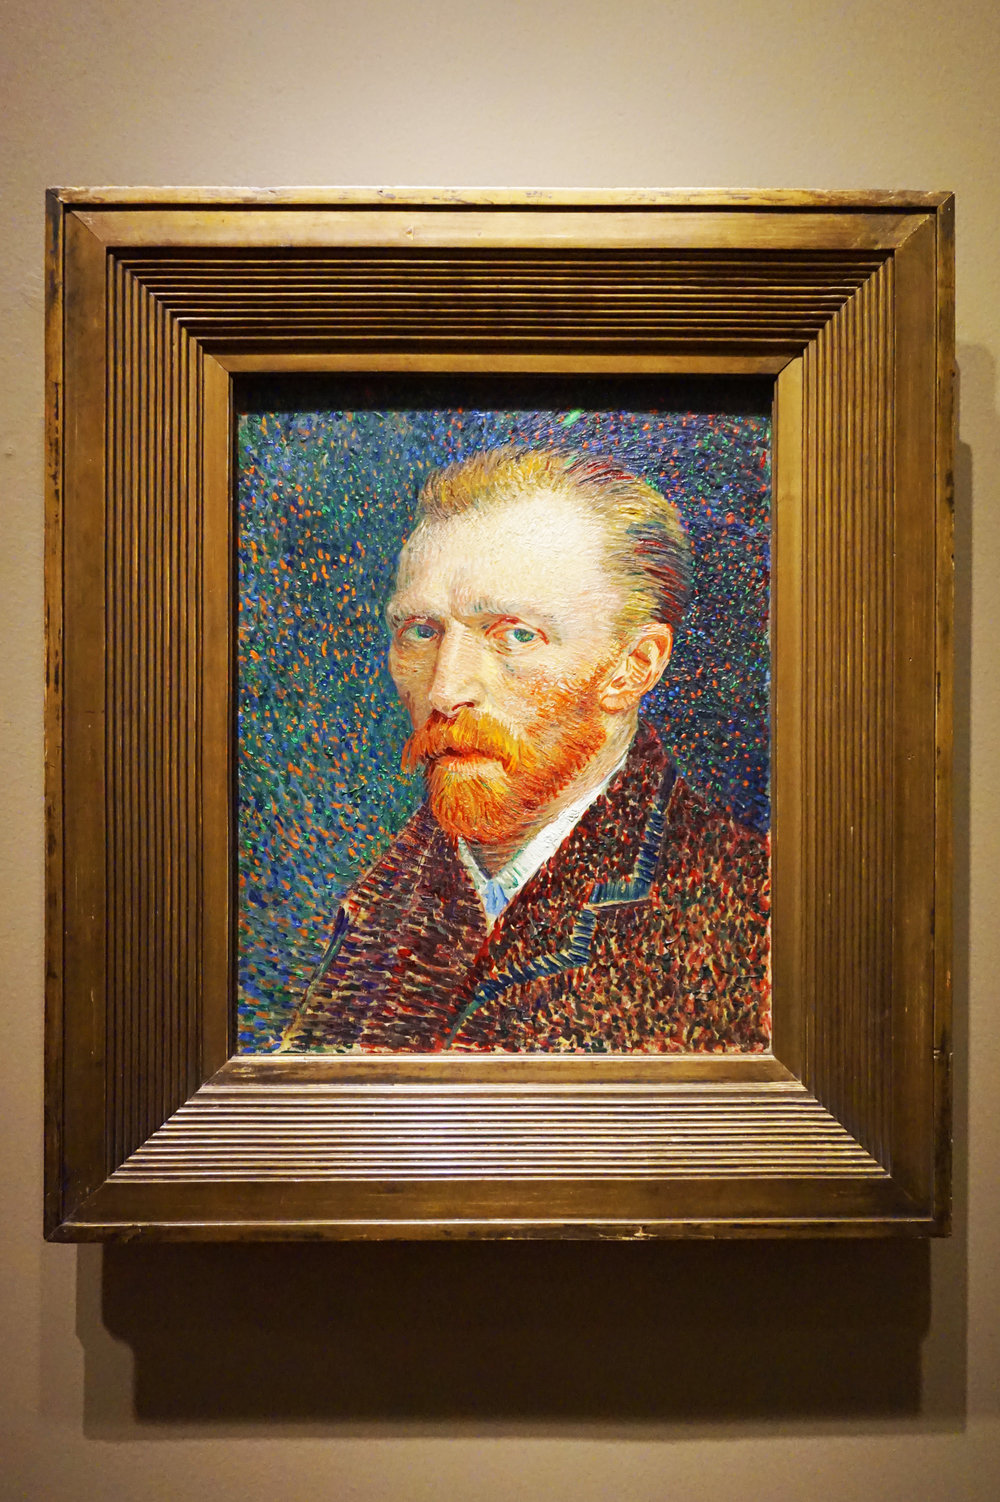 Self-portrait (1889)